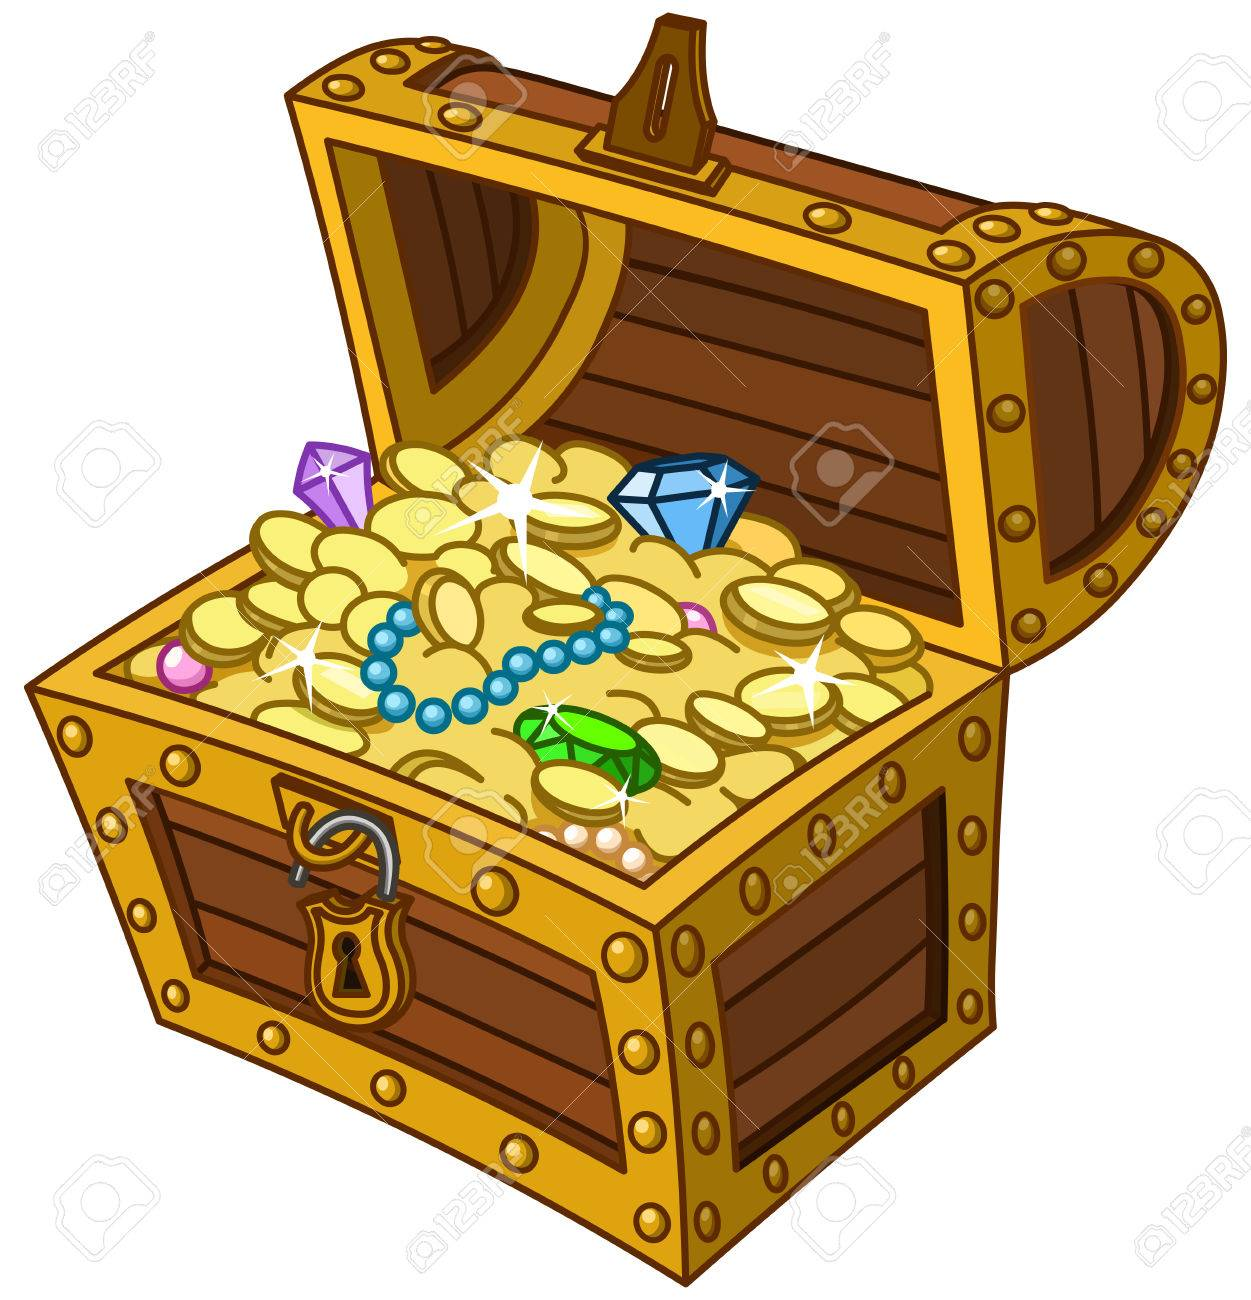 75067591-opened-wooden-treasure-chest-fu